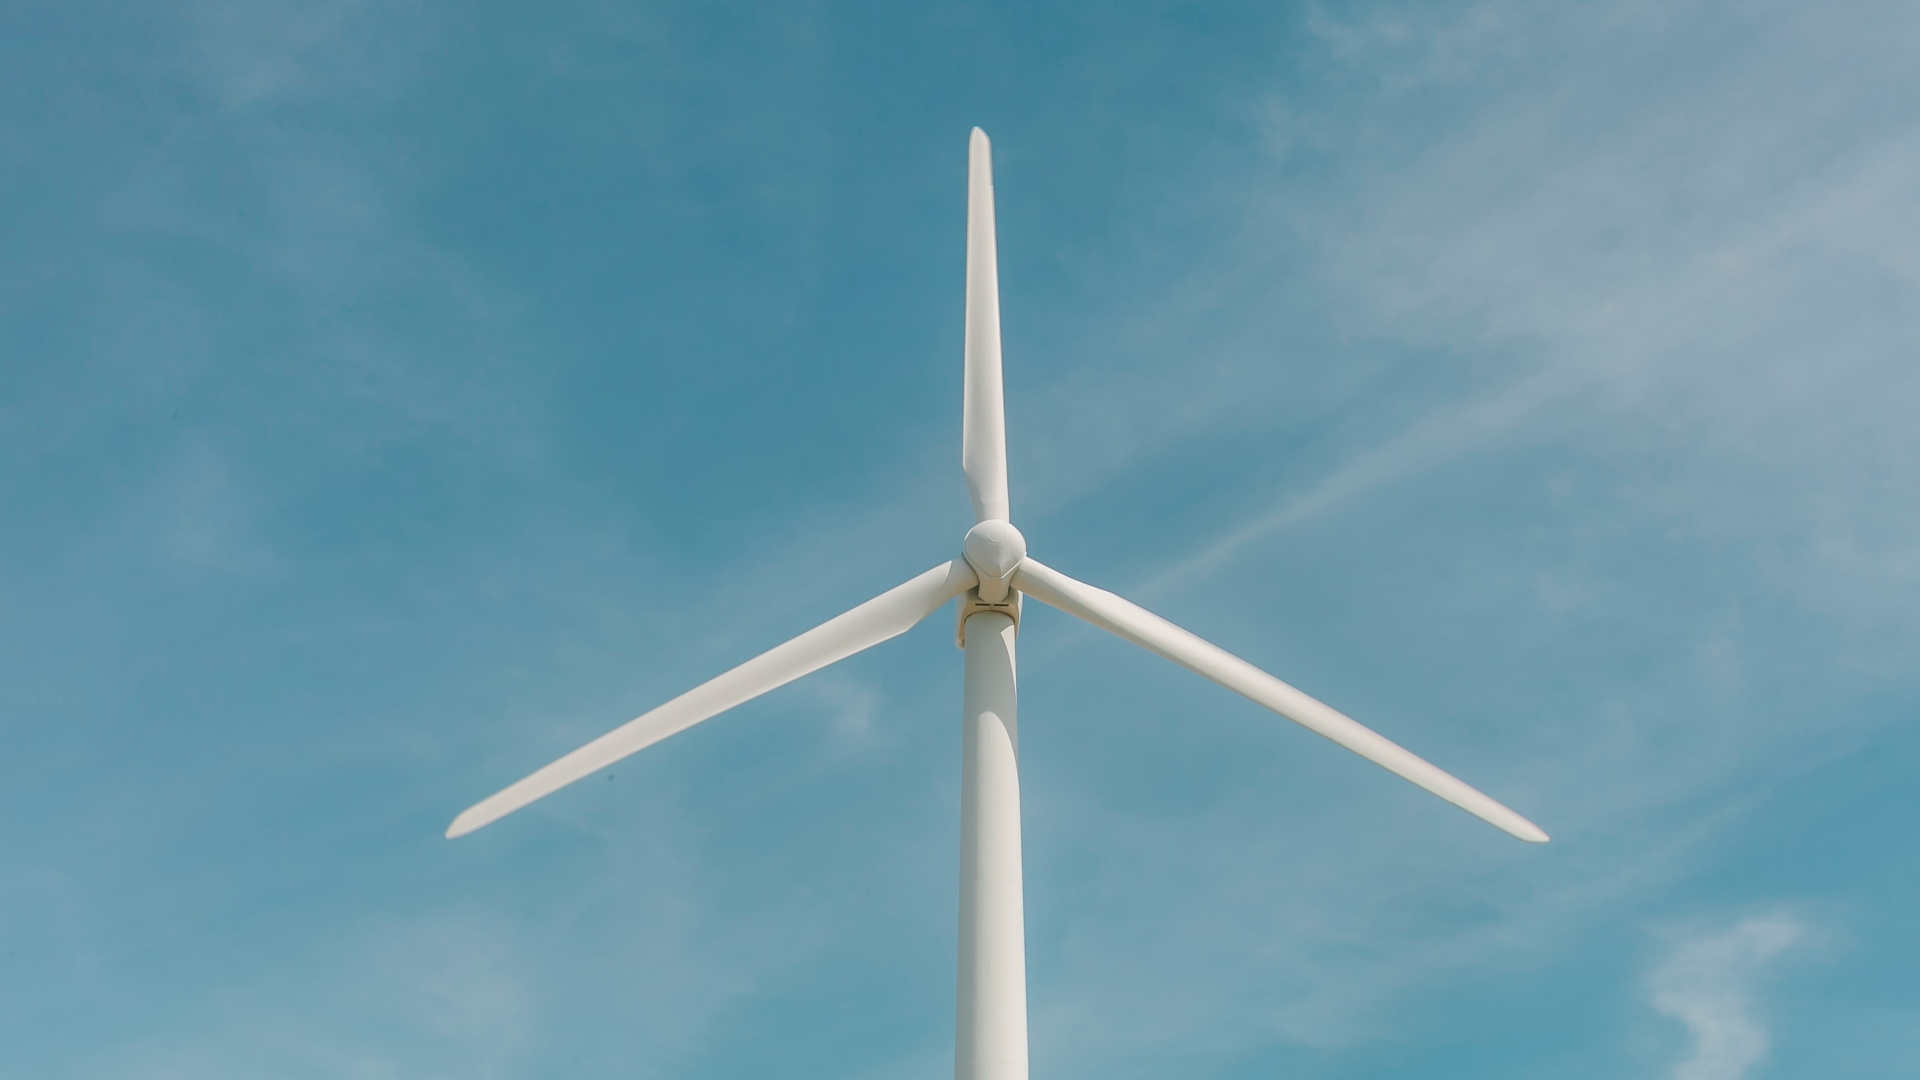 Coillte CGA has sold its wind portfolio to Greencoat Renewables plc